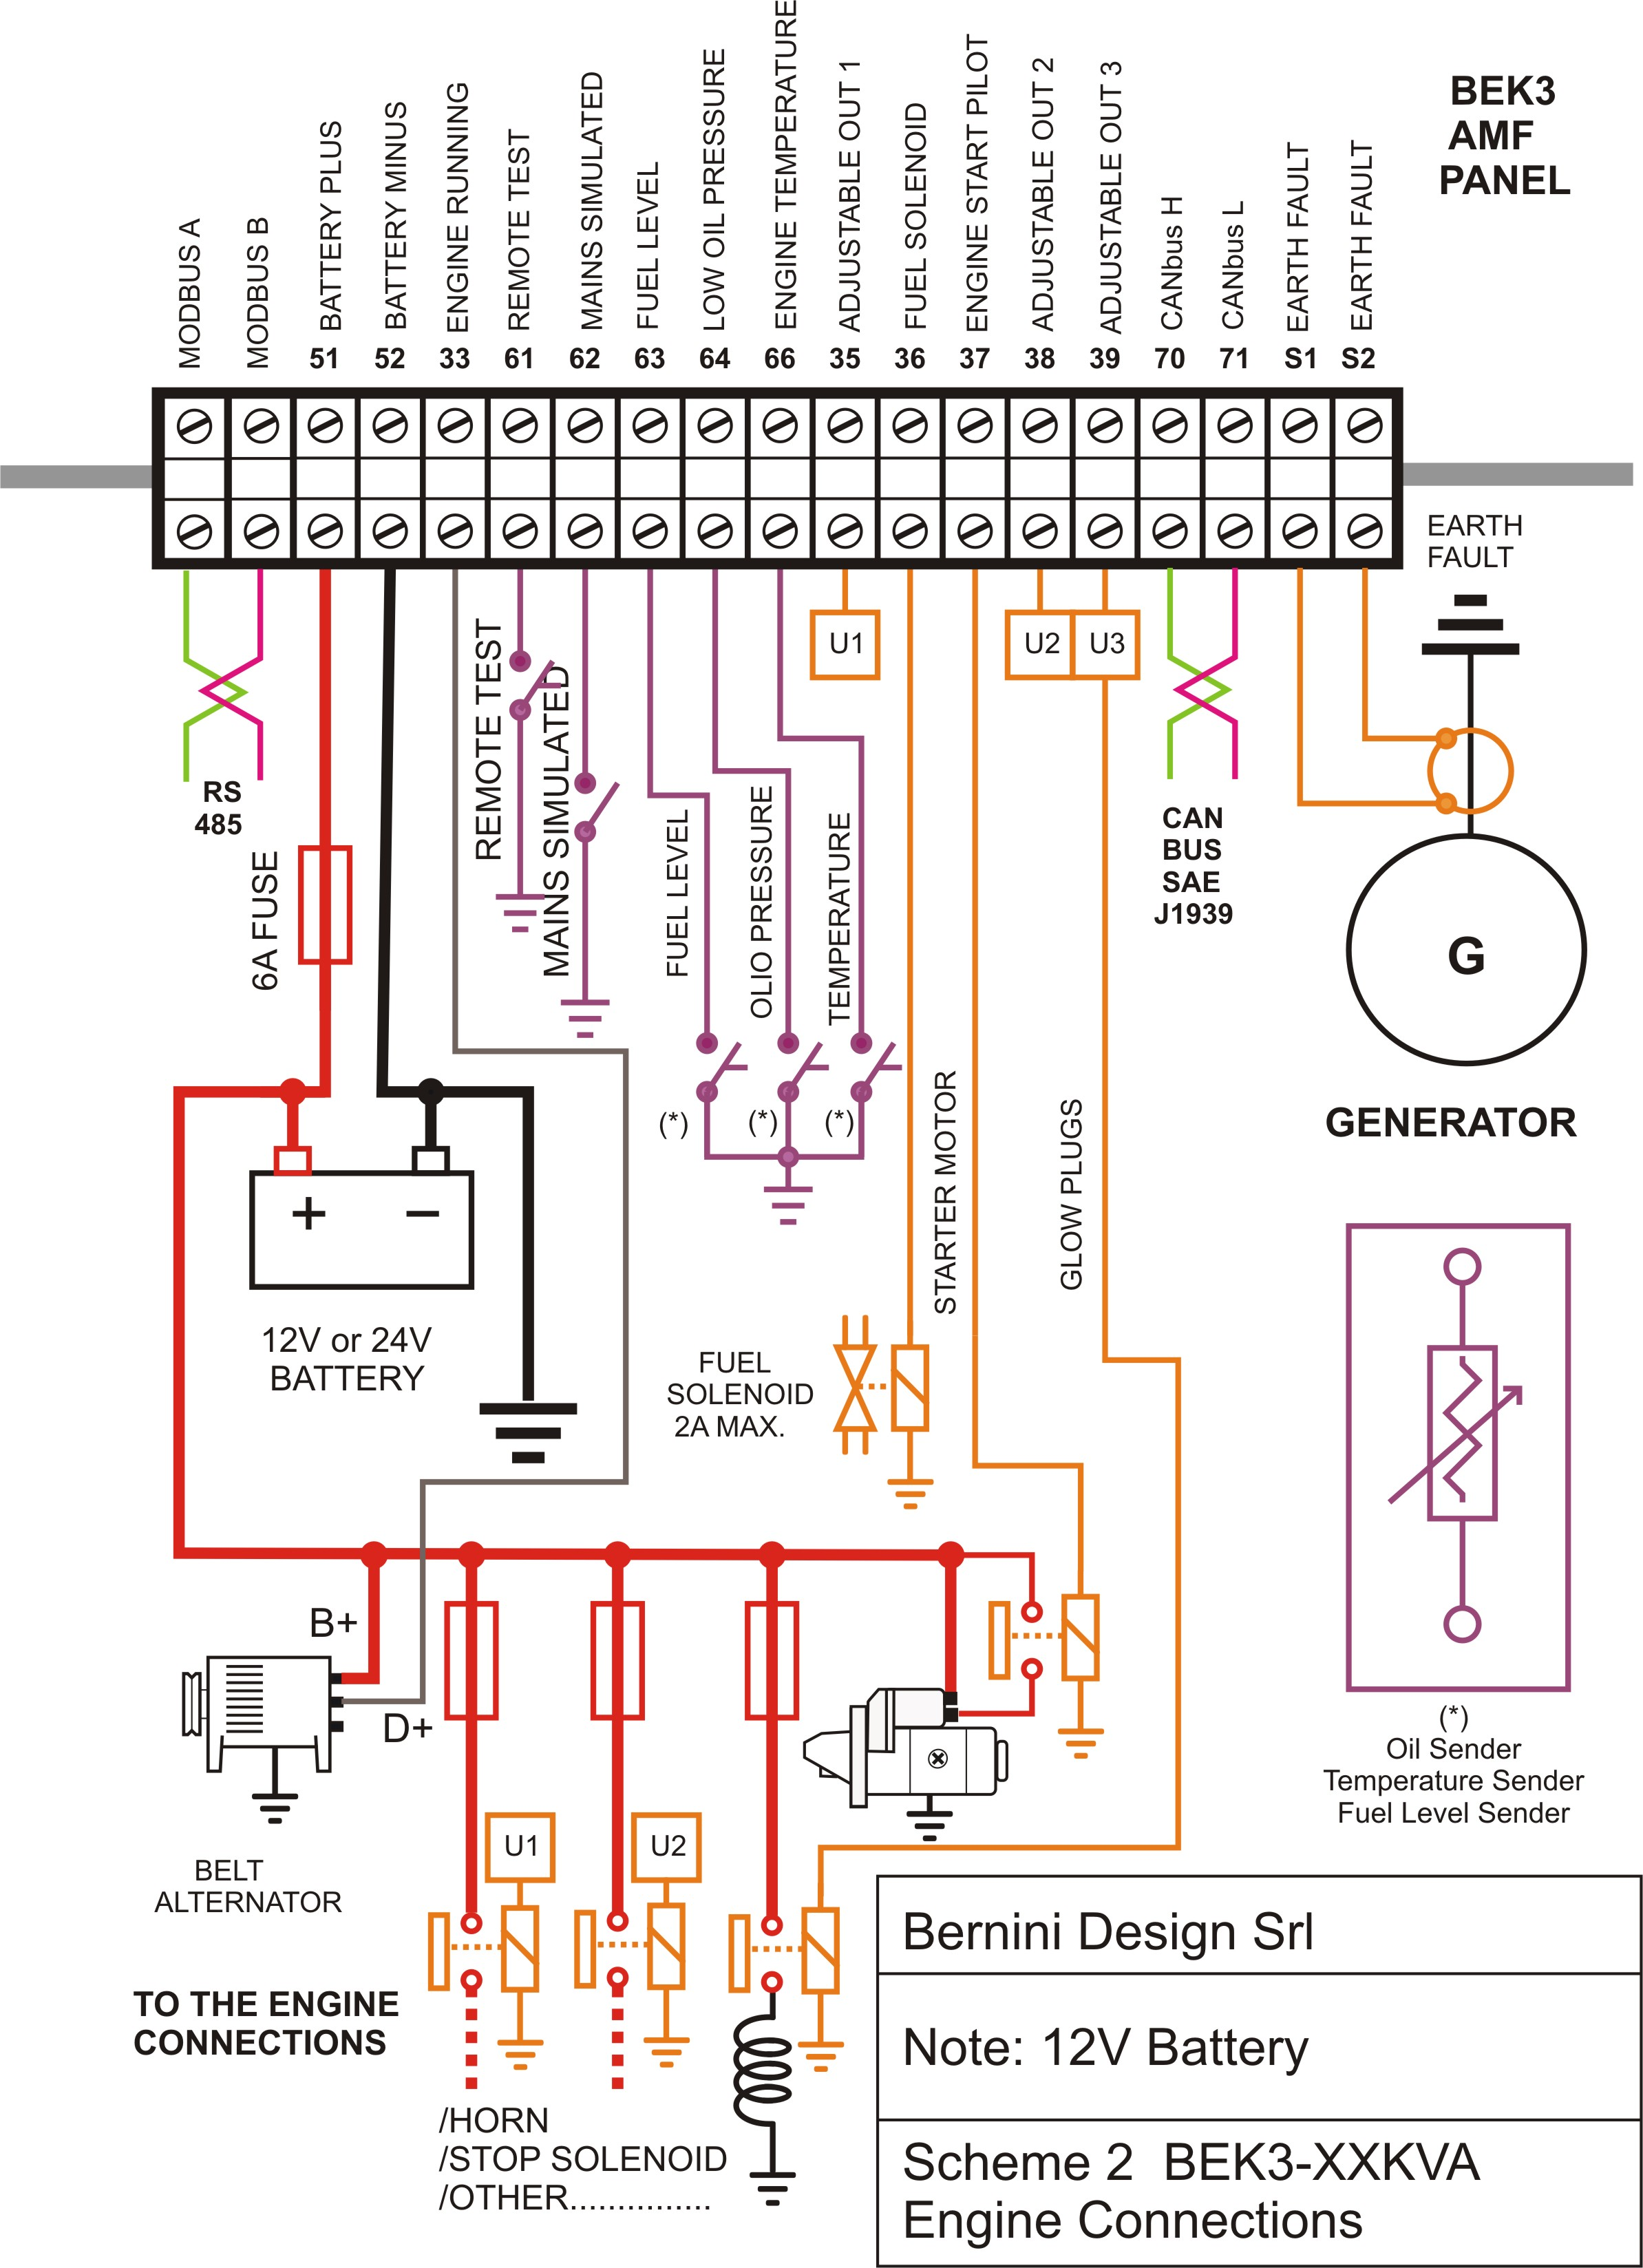 Diesel Generator Control Panel Wiring Diagram Engine Connections1 auto mains failure control panel genset controller controller wire diagram for 3246e2 lift at crackthecode.co